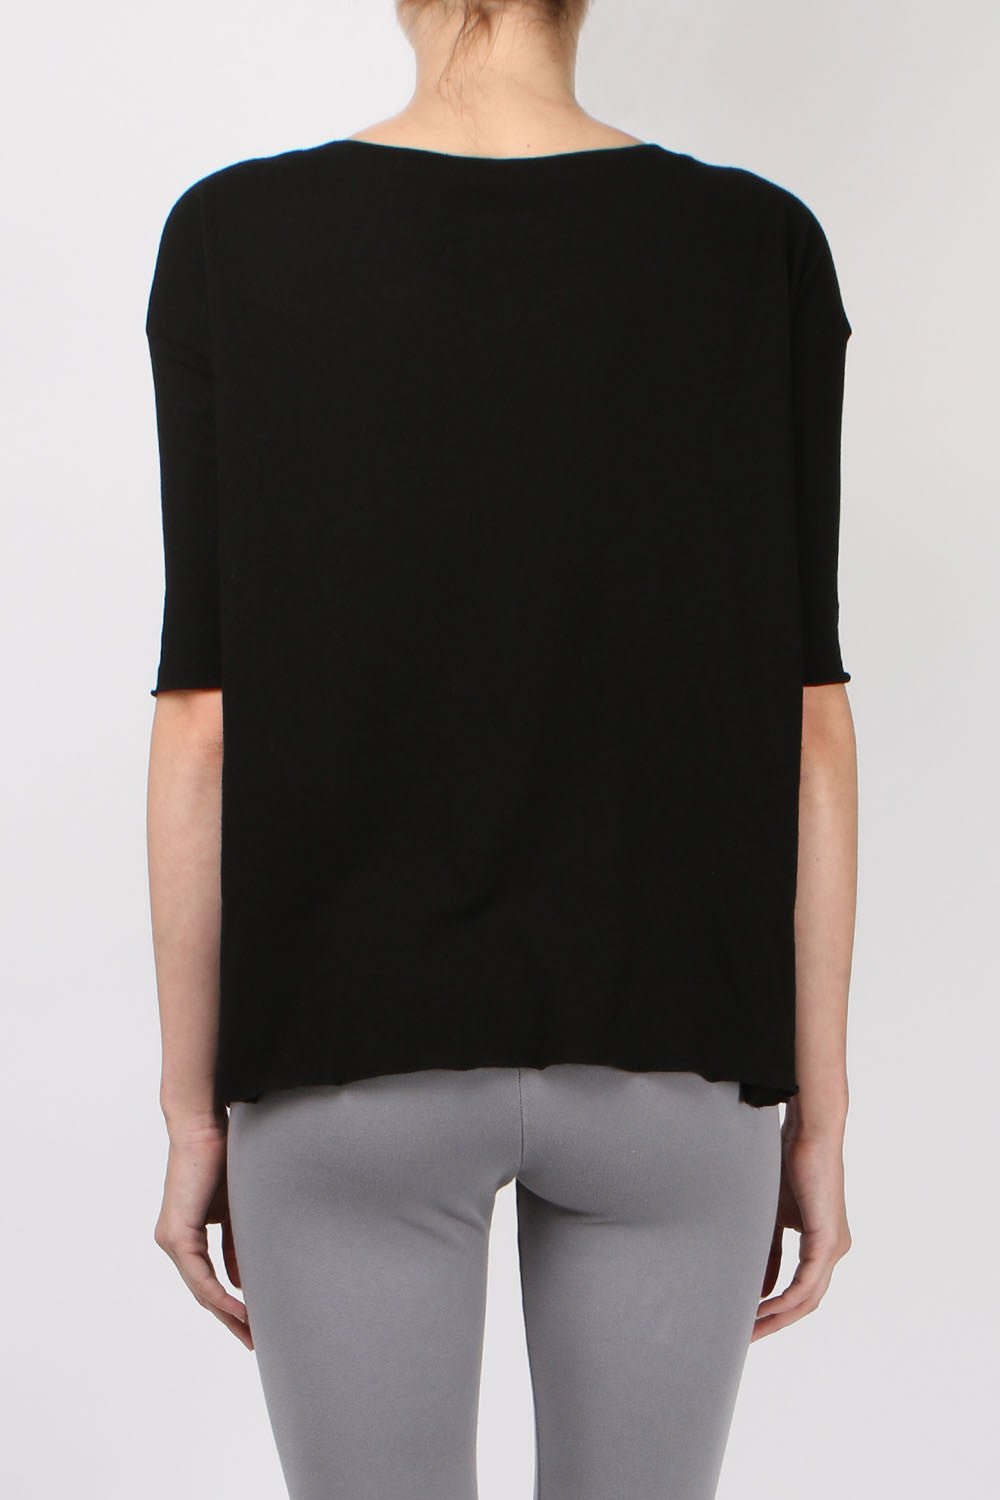 Tee Lab by Frank & Eileen Elbow Tee in Blackout